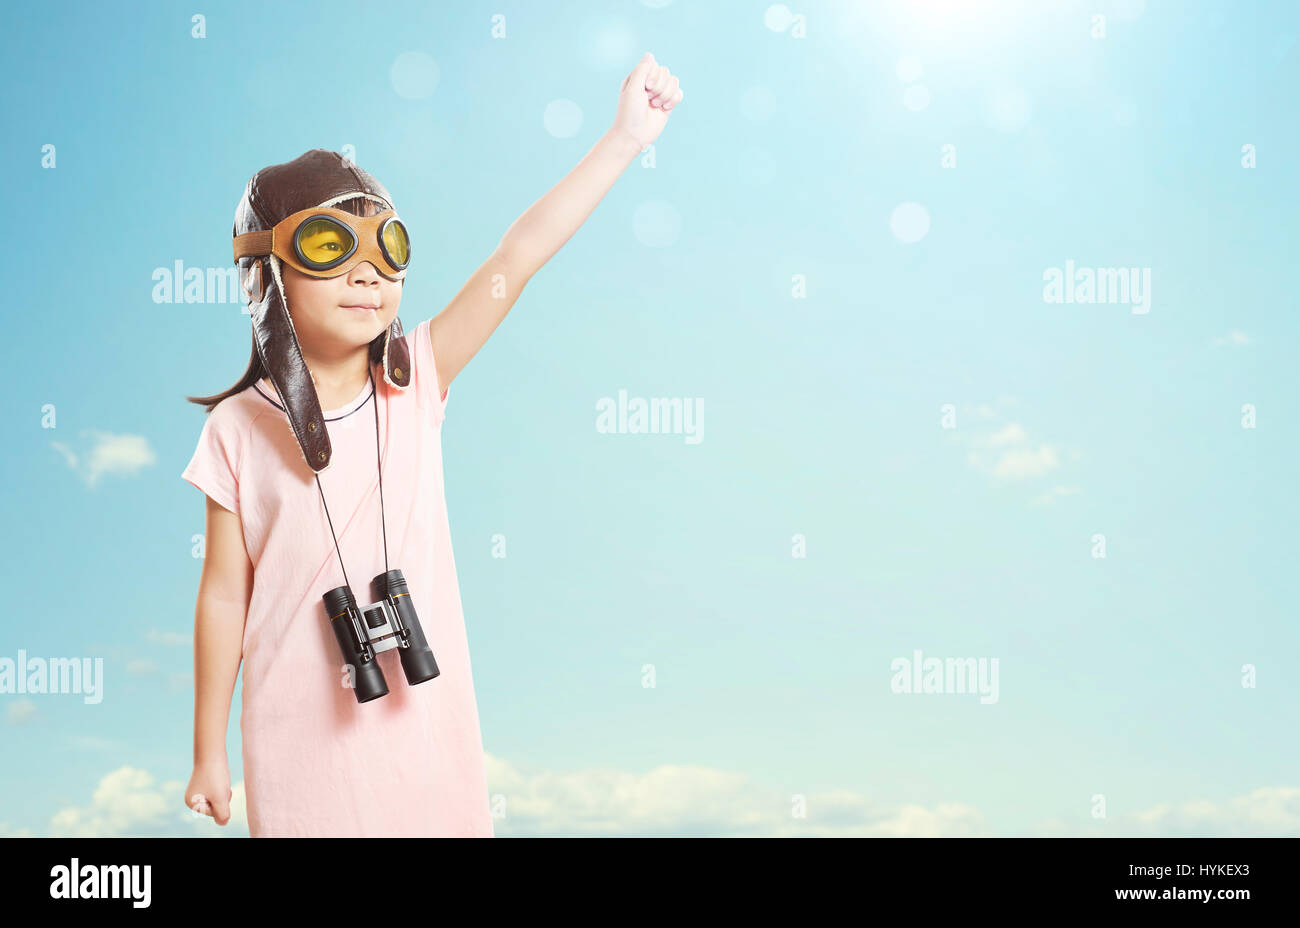 Little asian girl wear aviator glasses,telescope and enjoy her travel and adventure dreams , summer sky background - Stock Image